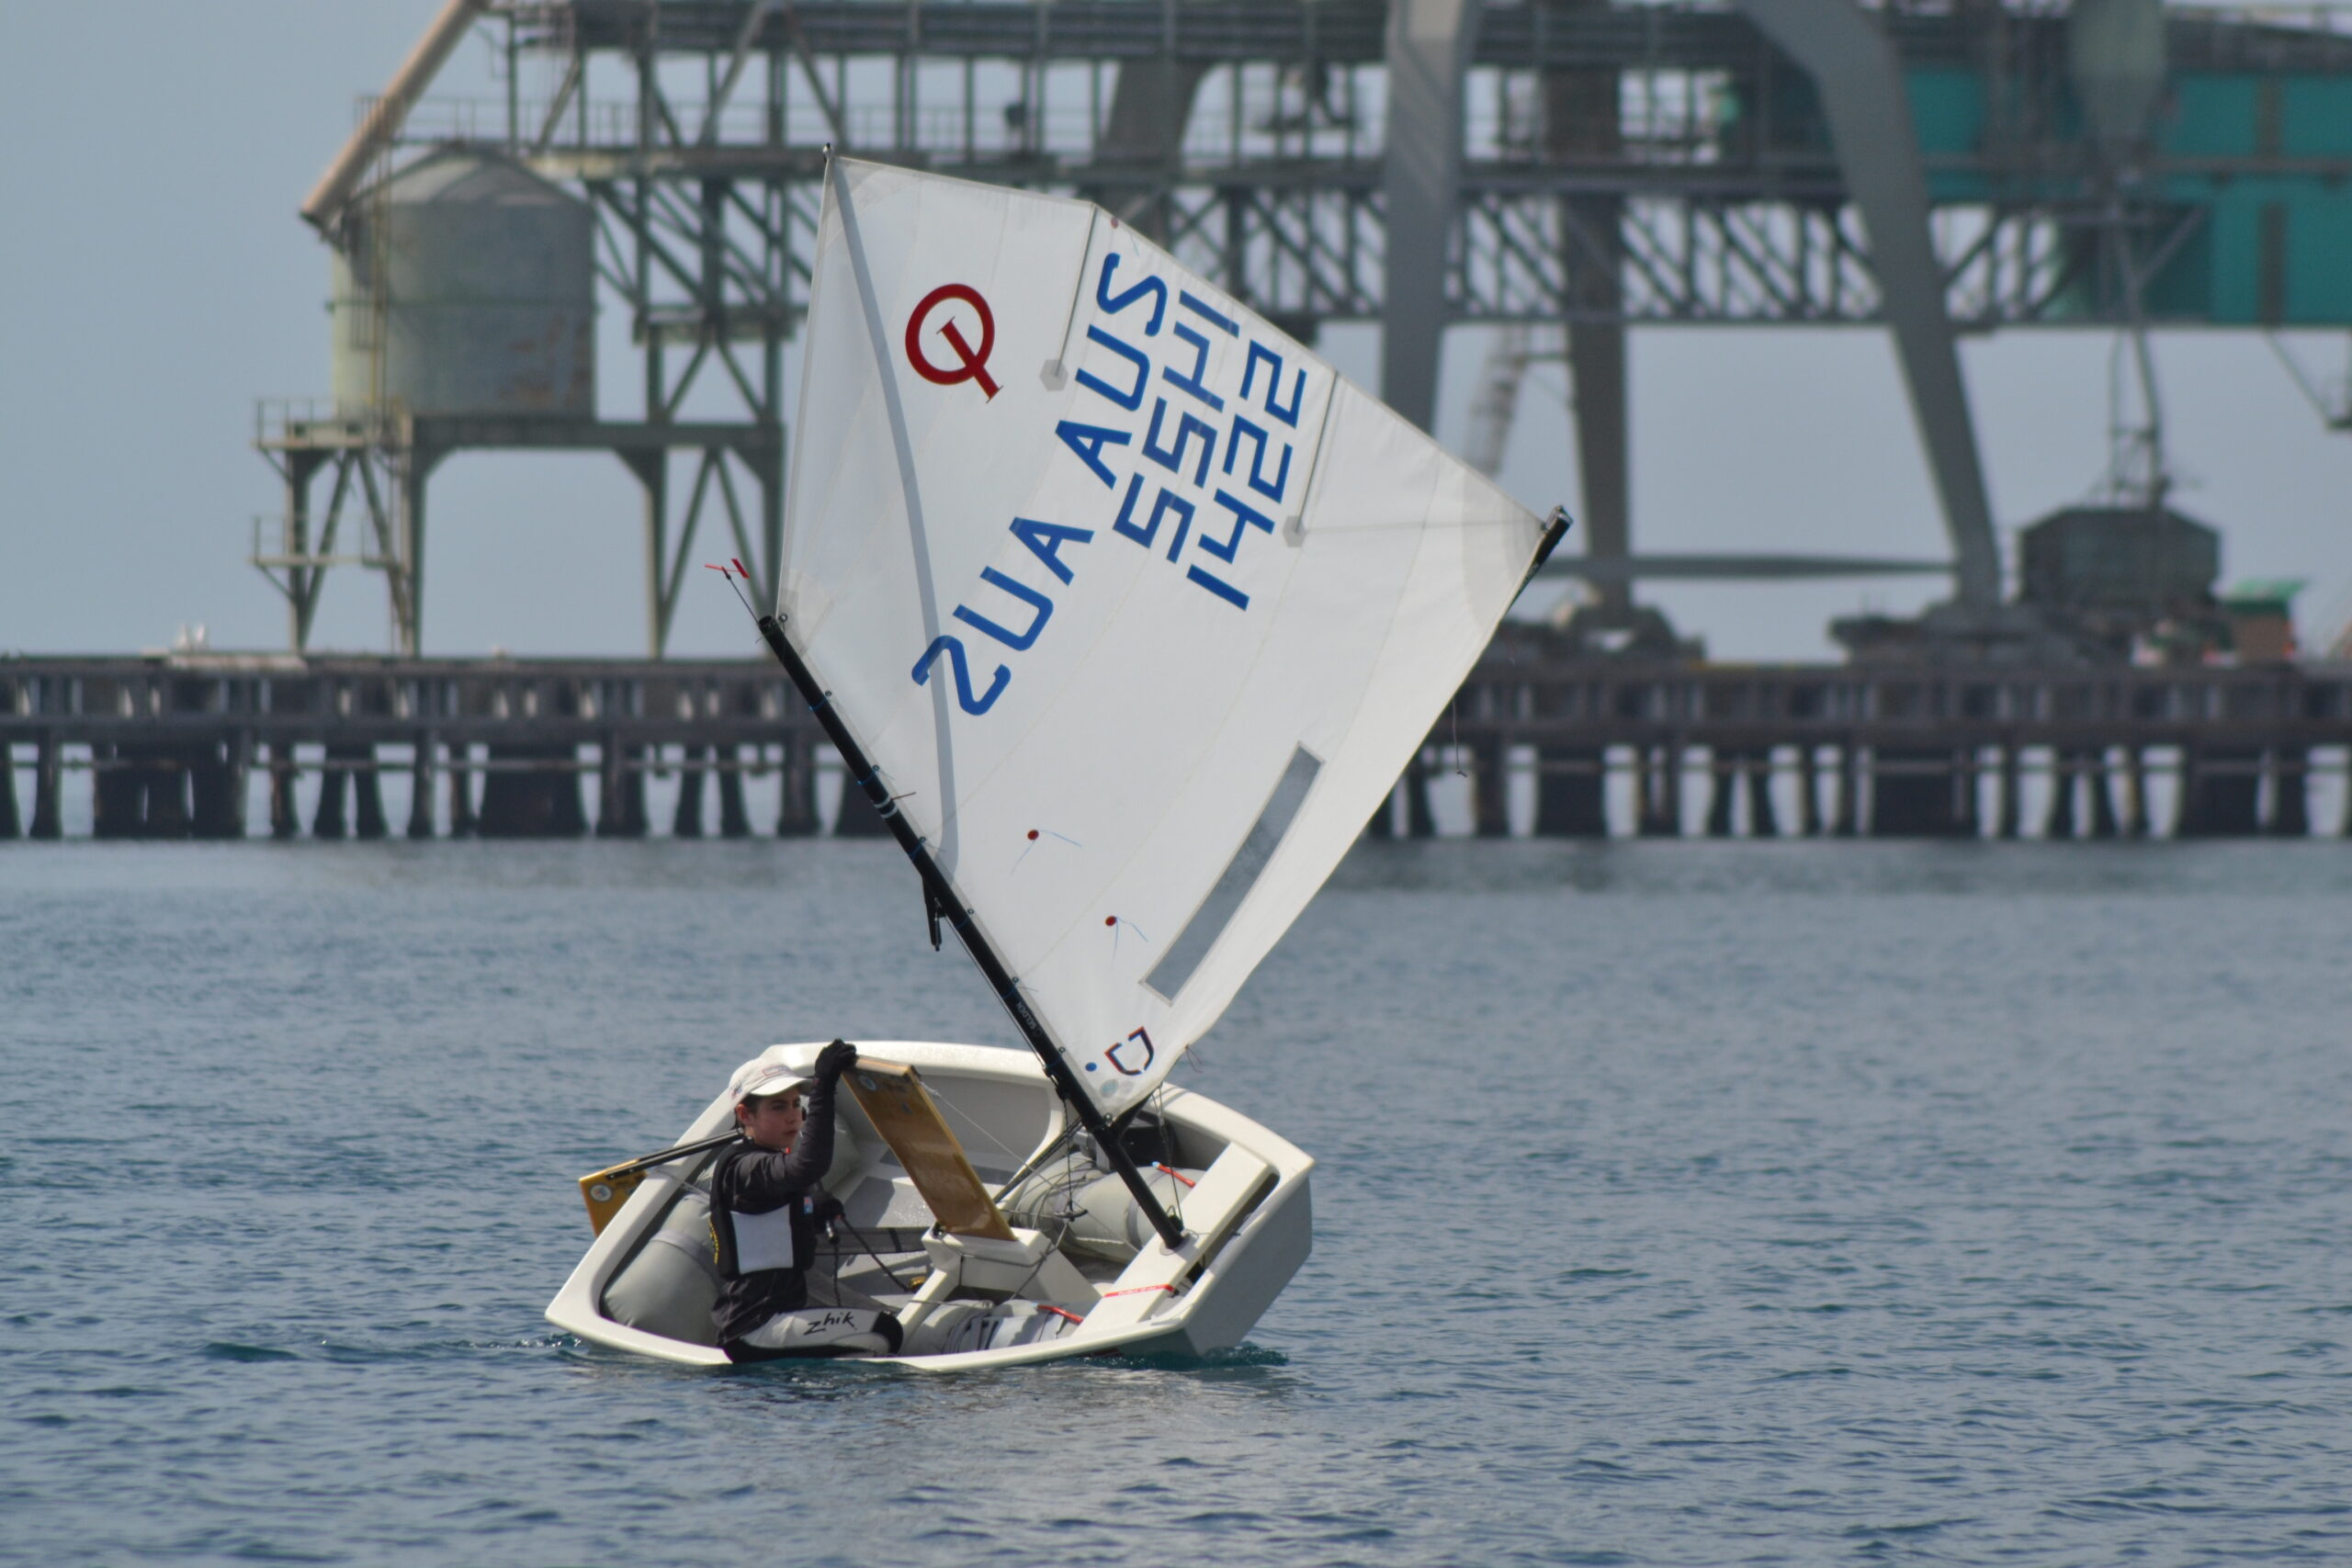 Ben Hinks (ASC) sailing in Port Lincoln at last year's Tri Series event.